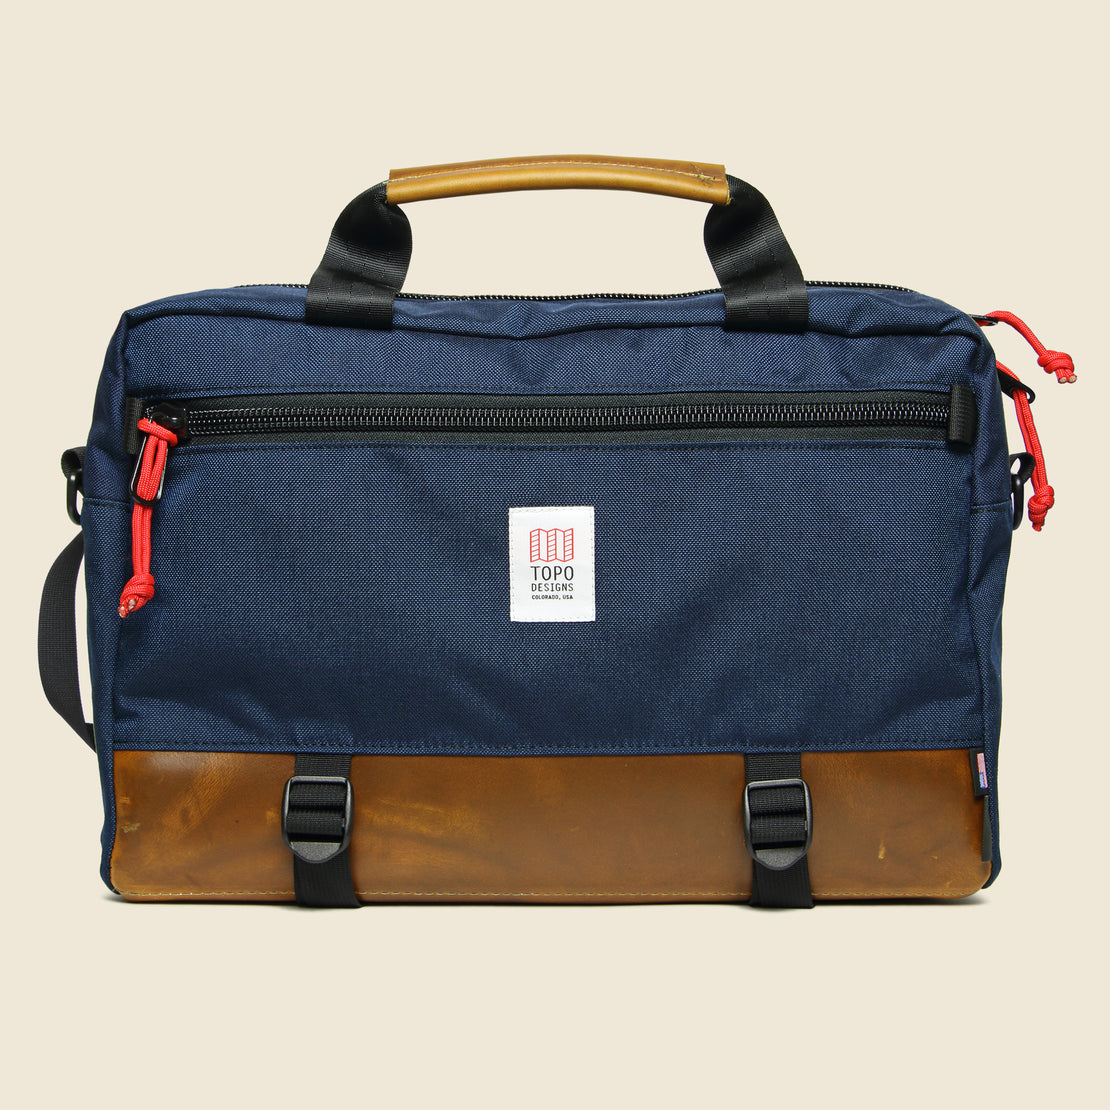 Topo Designs Commuter Briefcase - Navy/Brown Leather